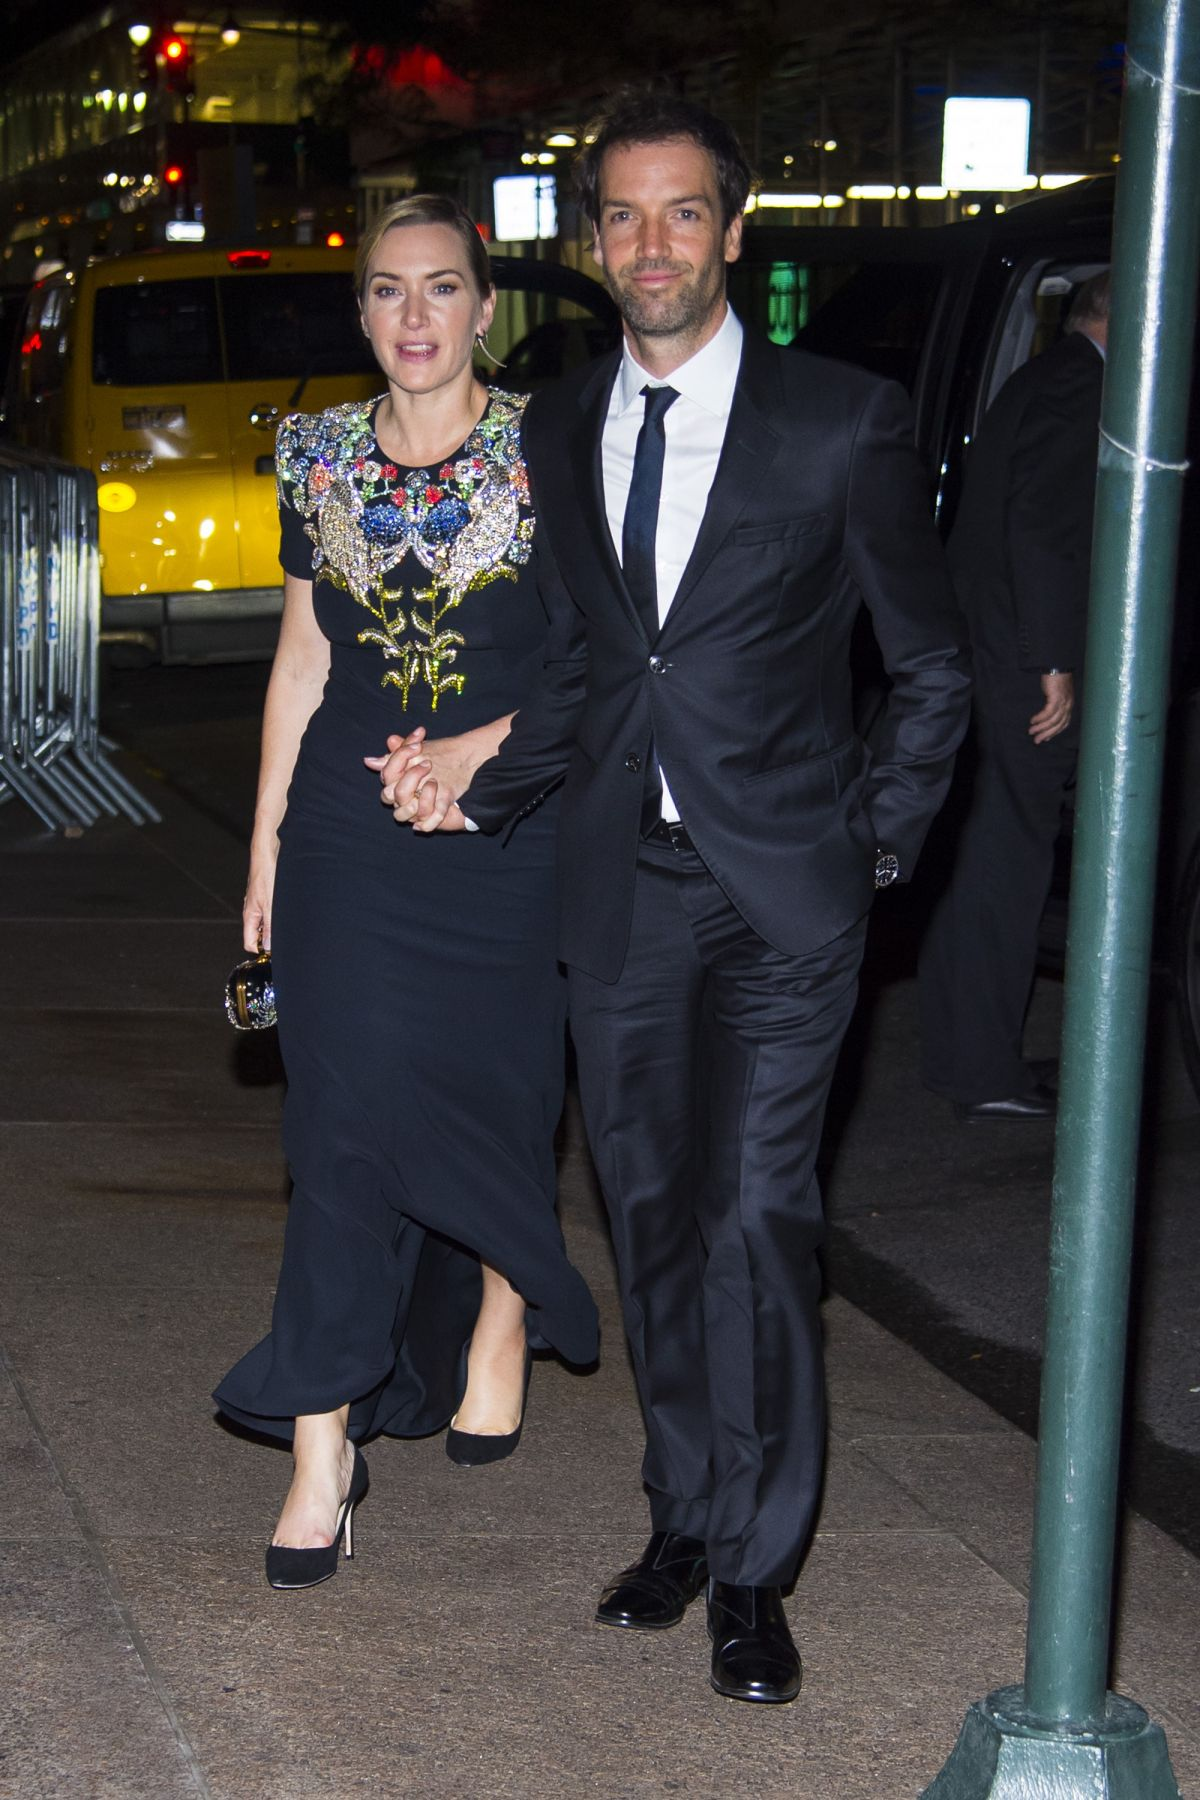 Orlaith Mcallister Shower Complete kate winslet and ned rocknroll out in new york 10/14/2017 - hawtcelebs